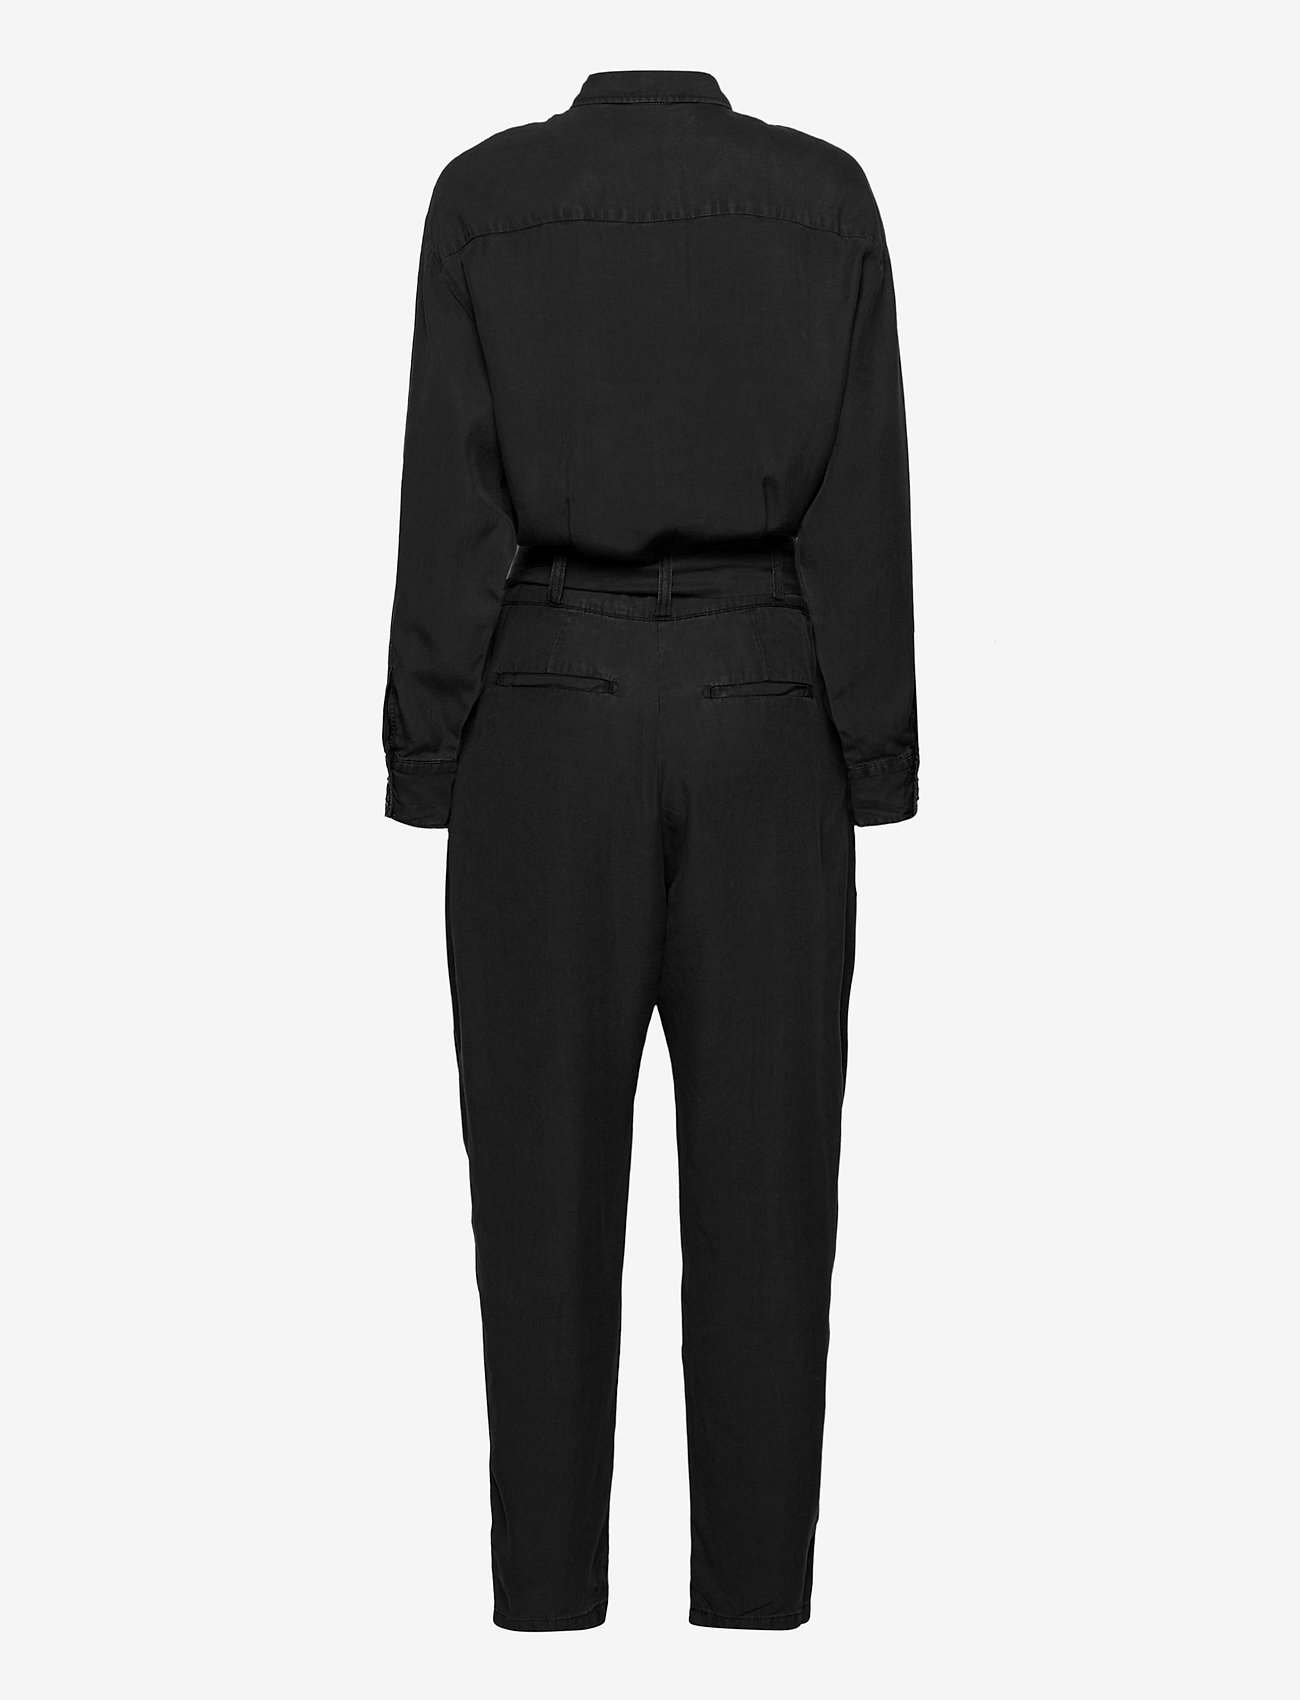 Jumpsuit (Black) (119.40 €) - Replay 1zm7N